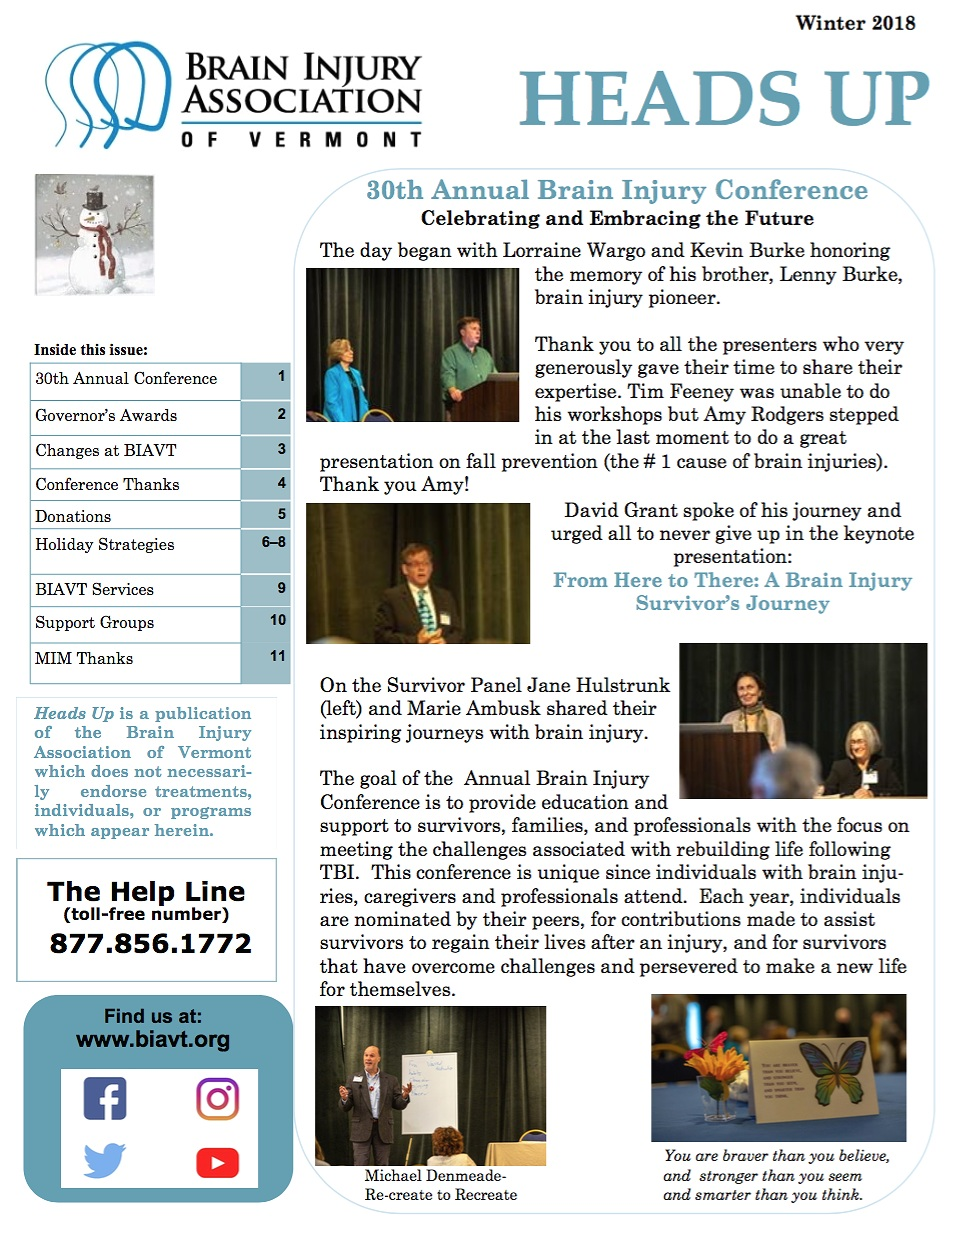 WINTER 2018 NEWSLETTER - Inside:30th Annual ConferenceGovernor's AwardsChanges to BIAVT